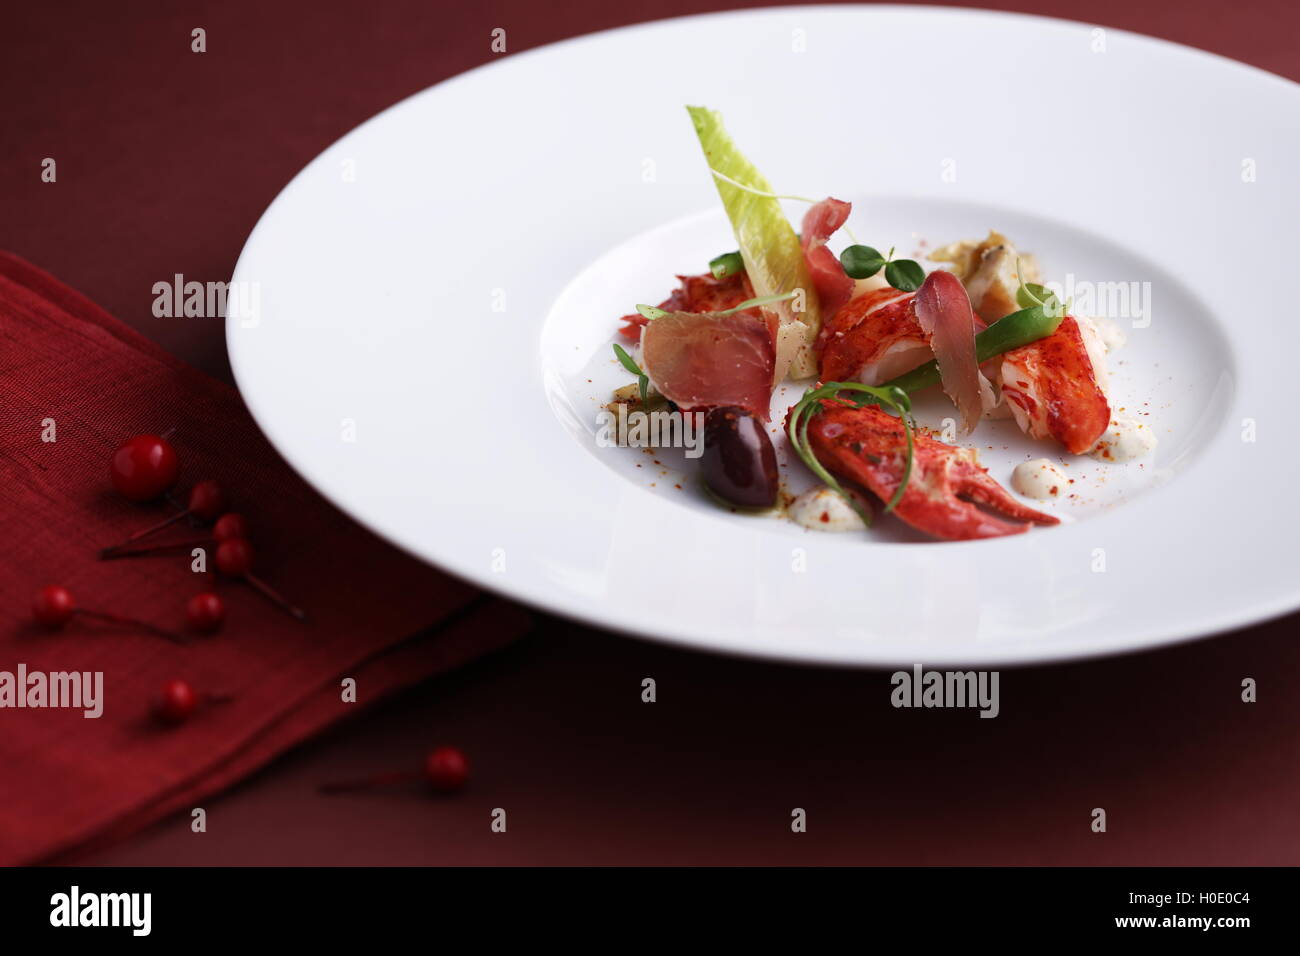 Atlantic blue lobster salad marinated on white plate in black background - Stock Image